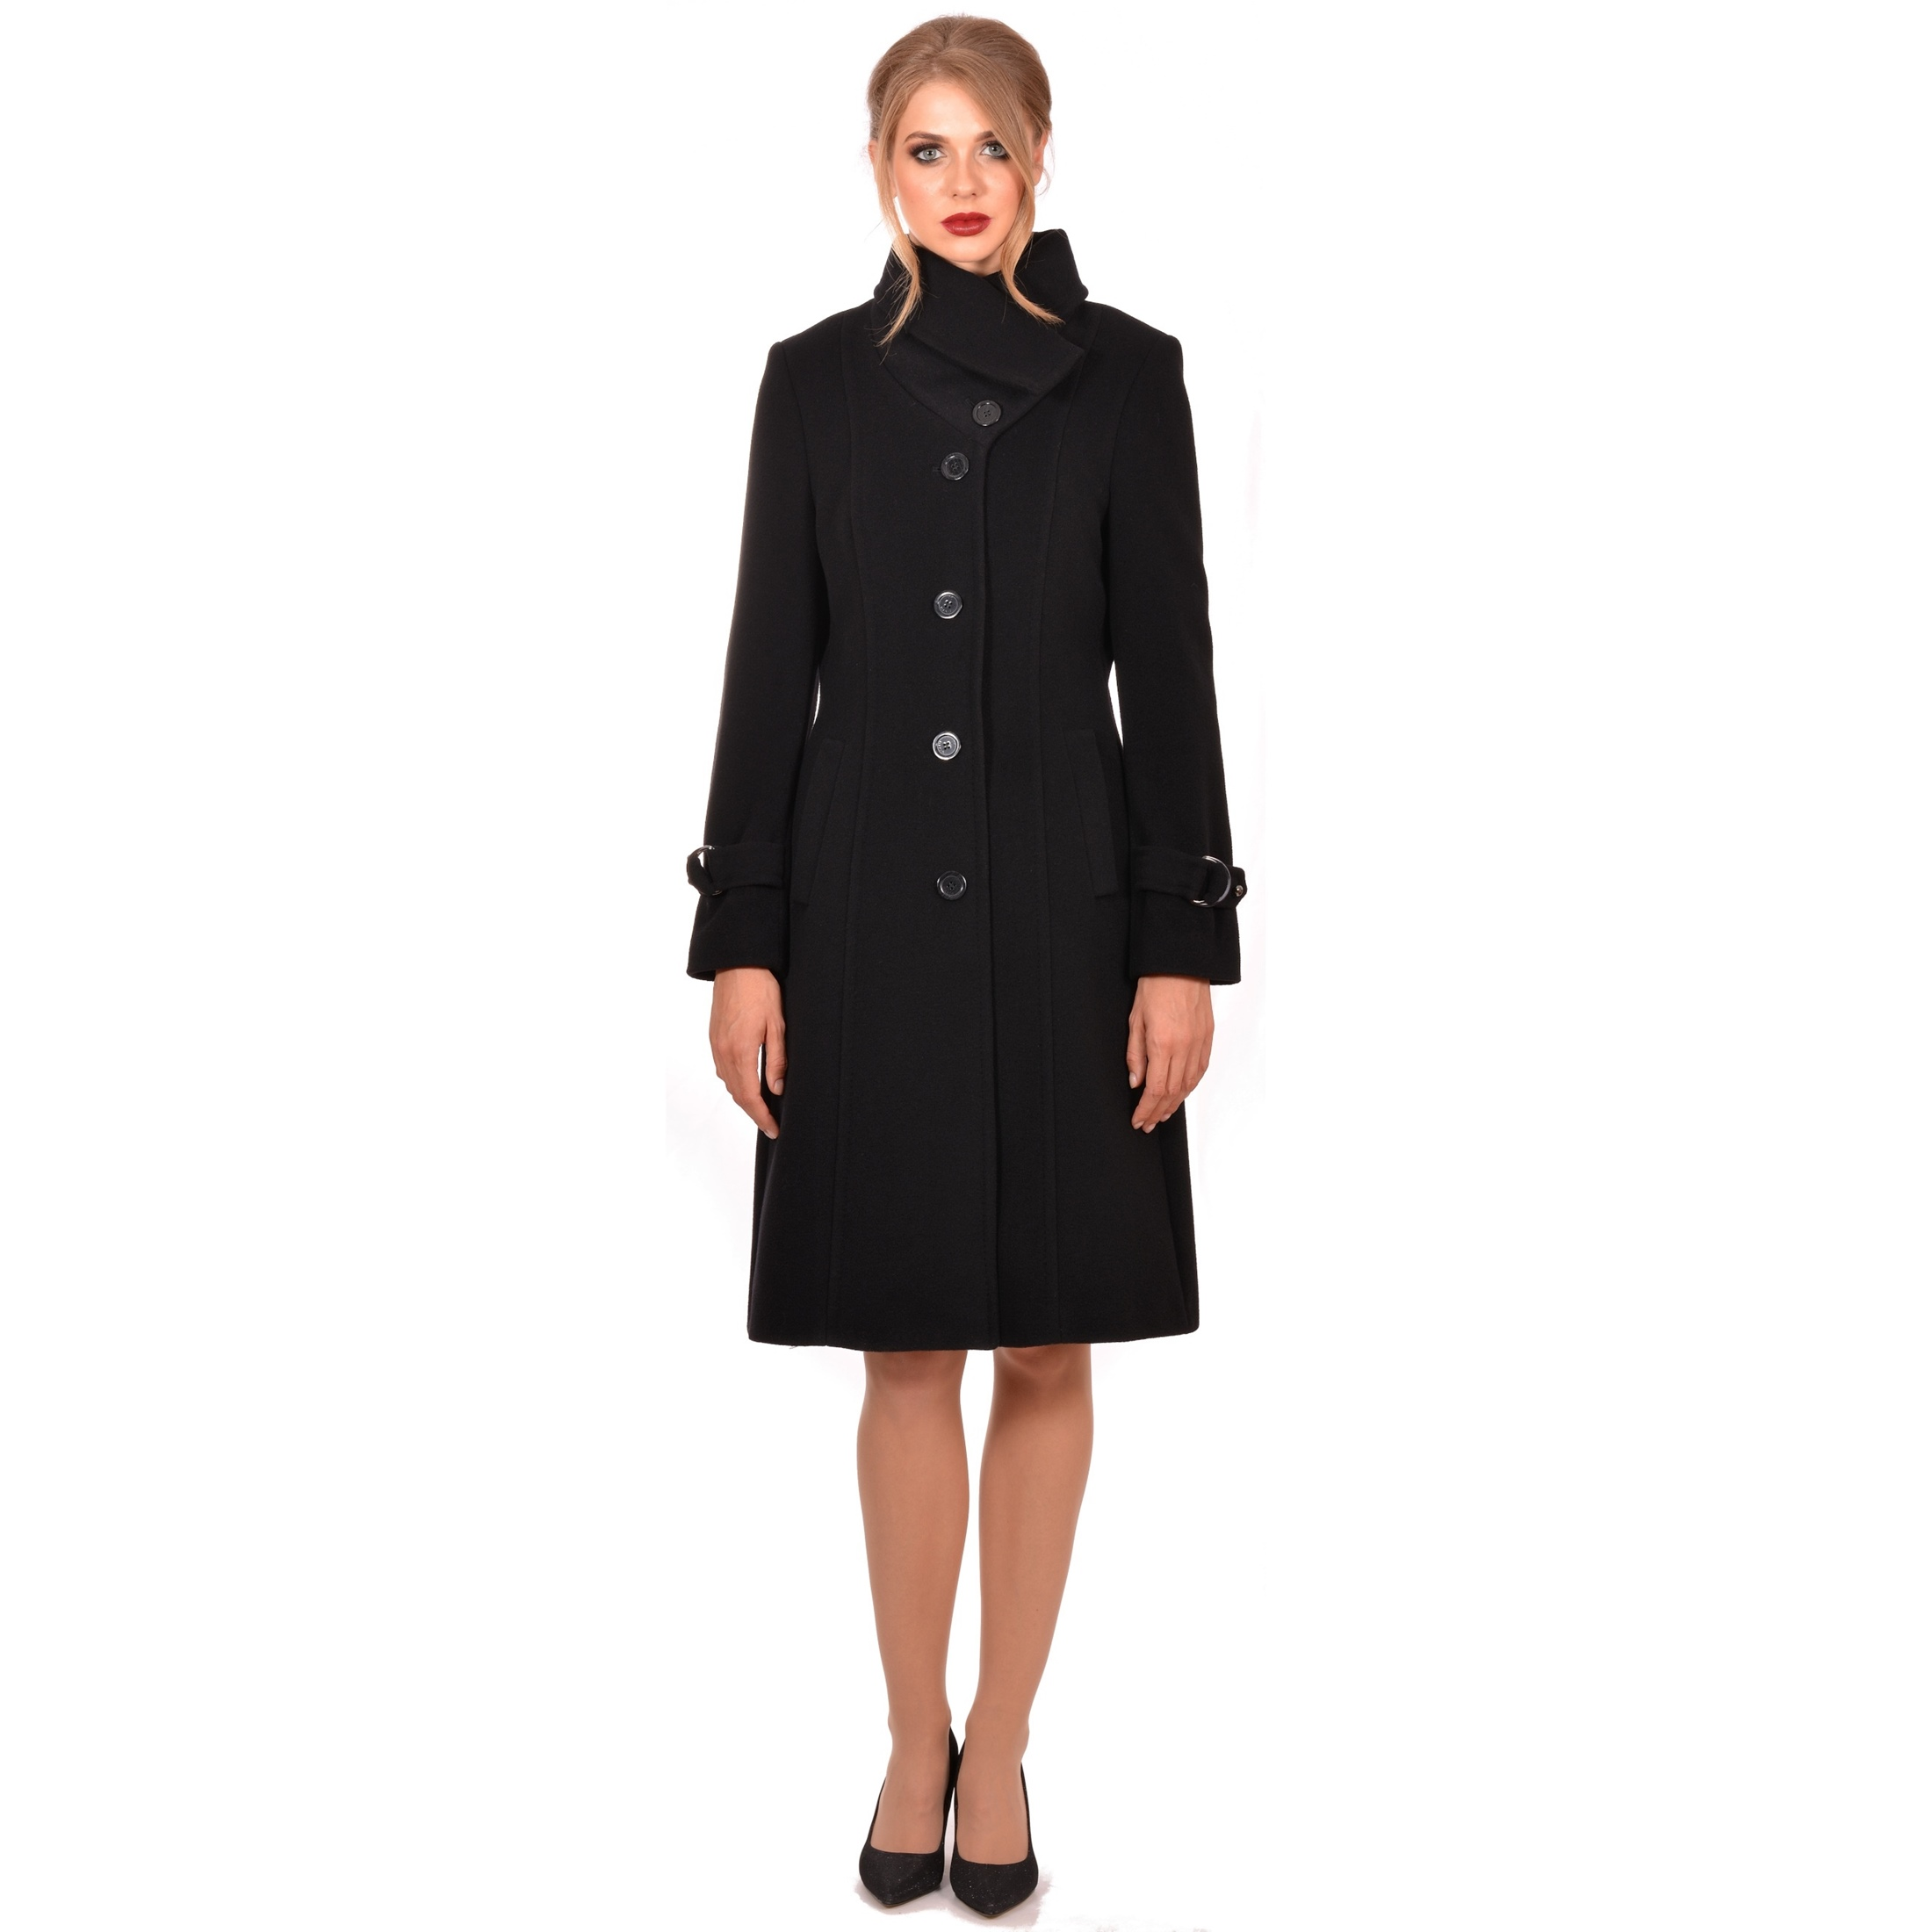 ženski crni kaput lady m,women's coat lady m by maria fashion